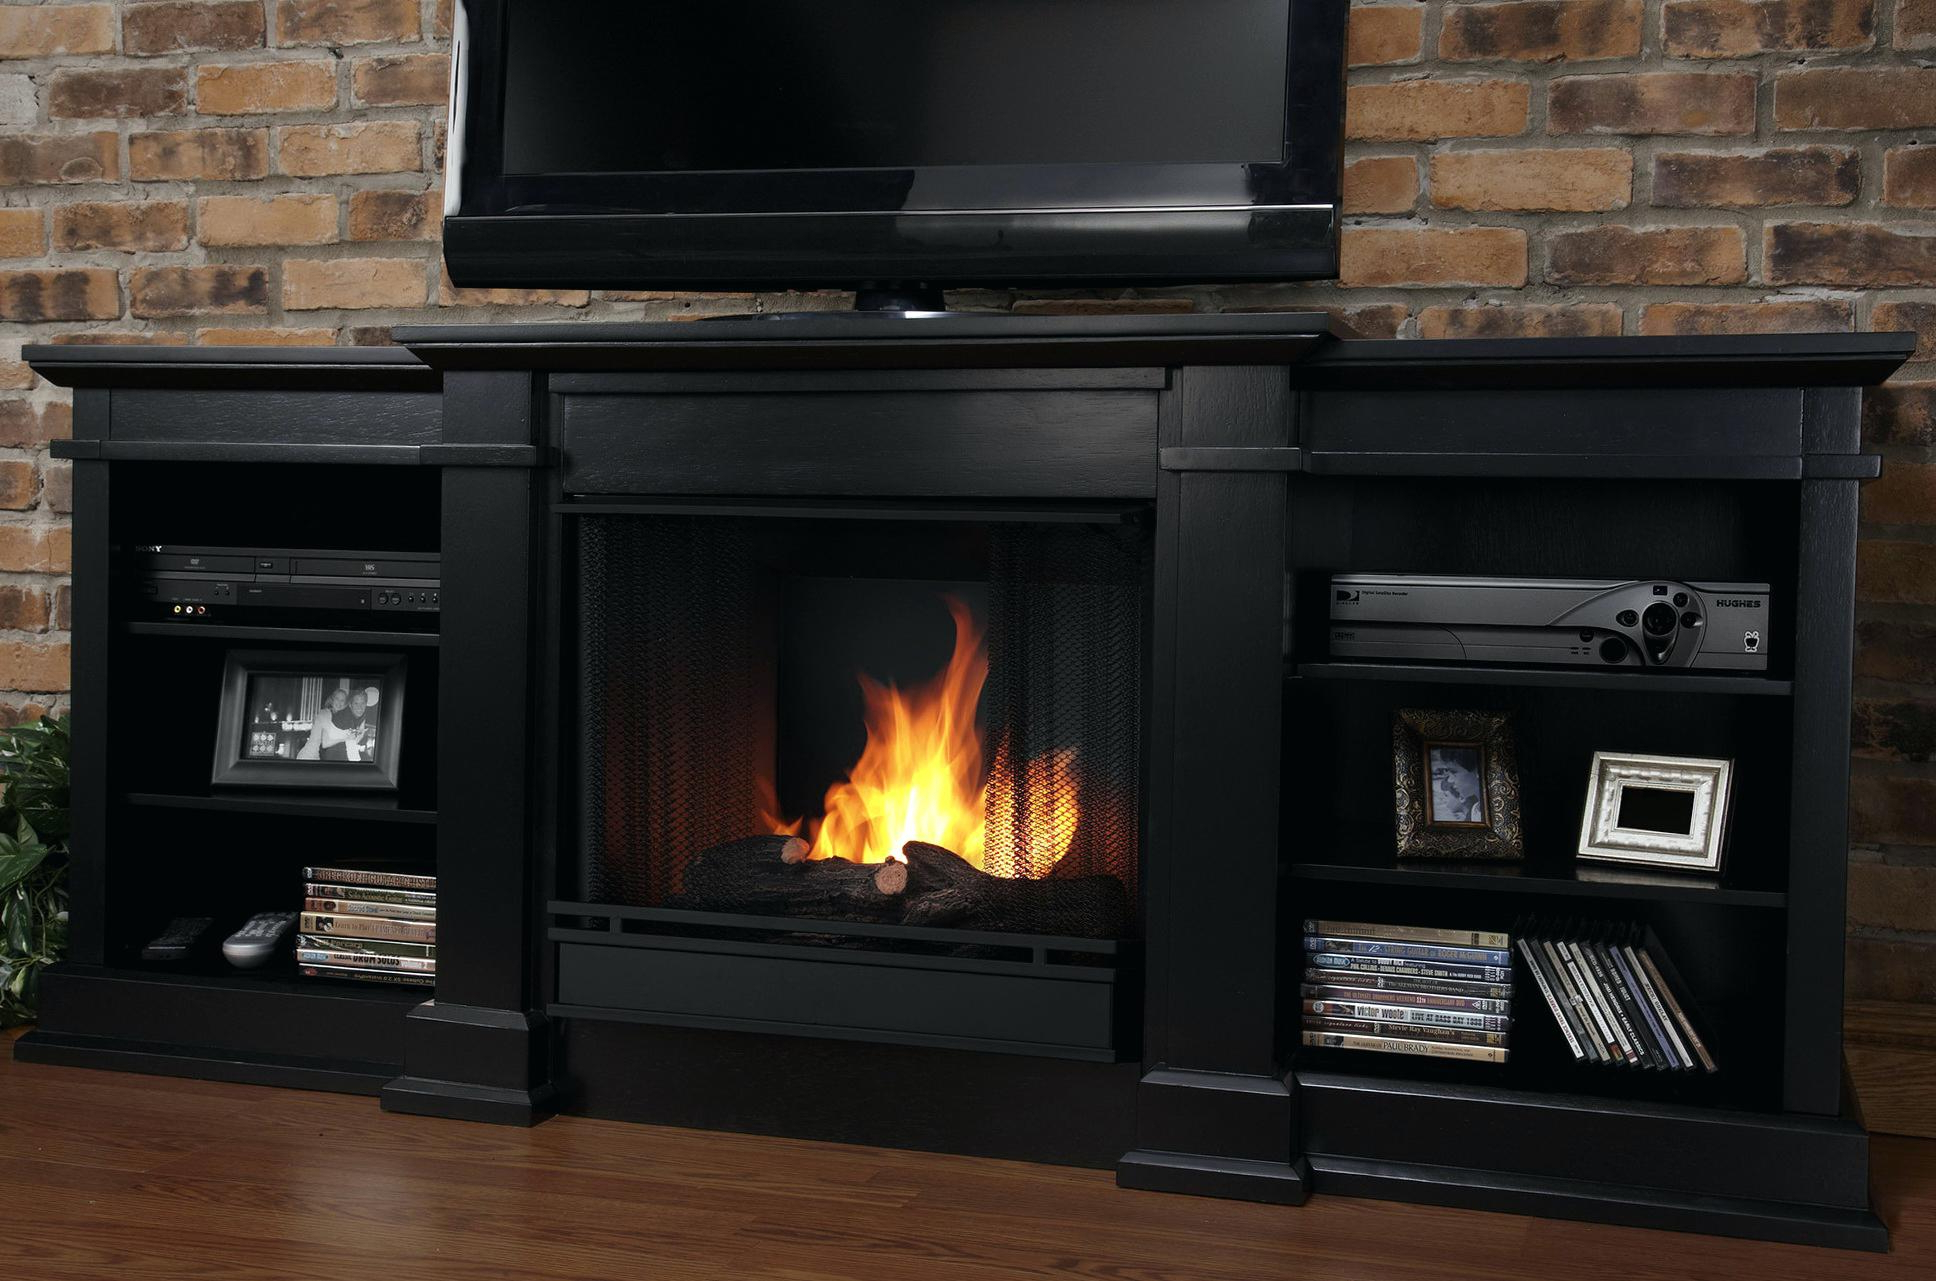 Fire Place Tv Stand Fireplace Big Lots Home Depot Corner In Newest Big Lots Tv Stands (View 7 of 20)